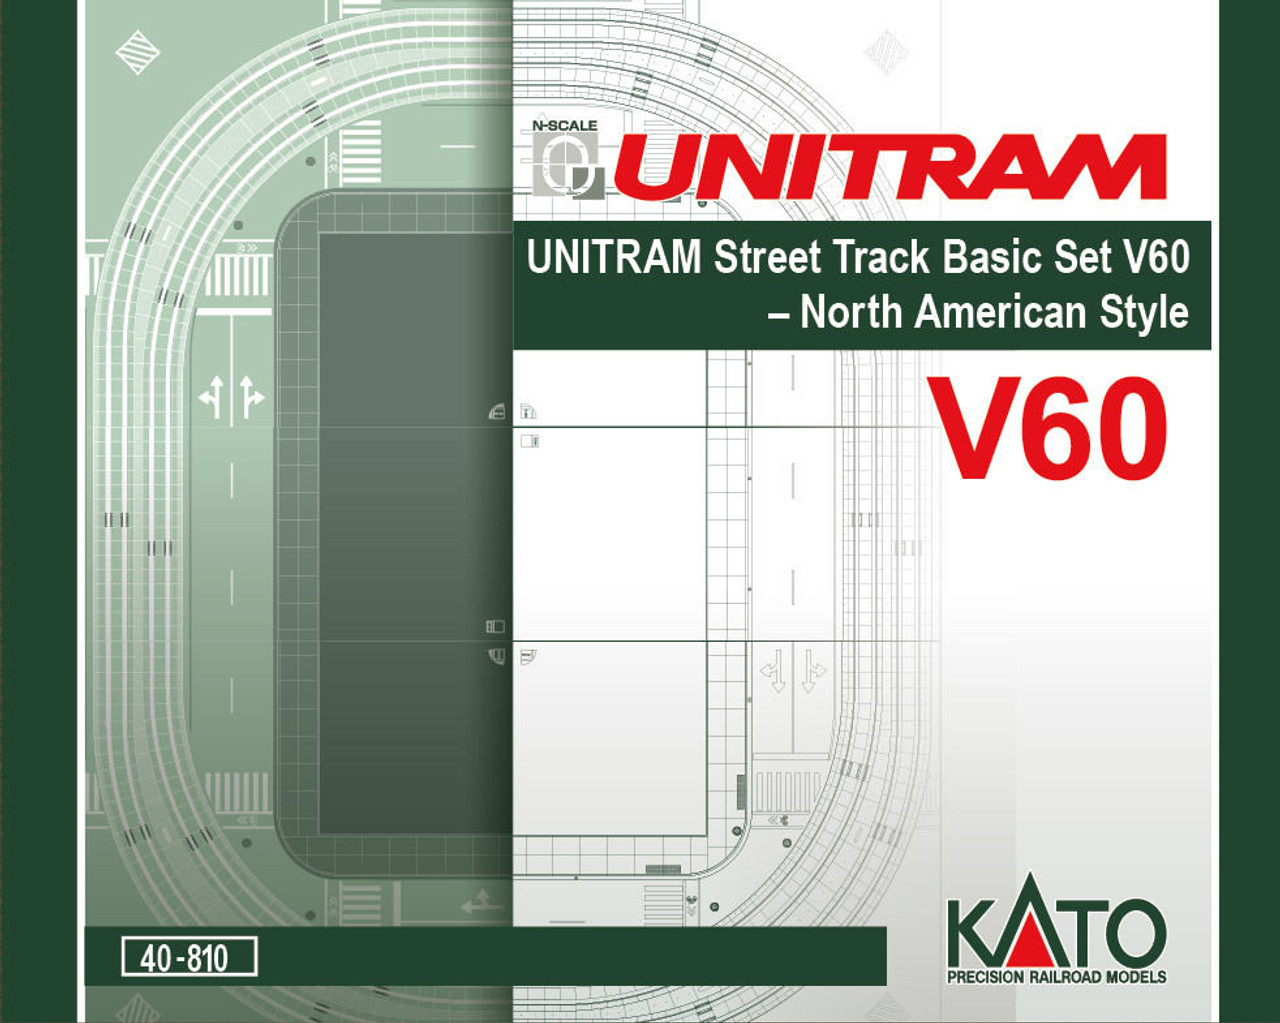 hight resolution of oval diagram models wiring diagramoval diagram models wiring diagram tutorial kato n scale v60 unitram north